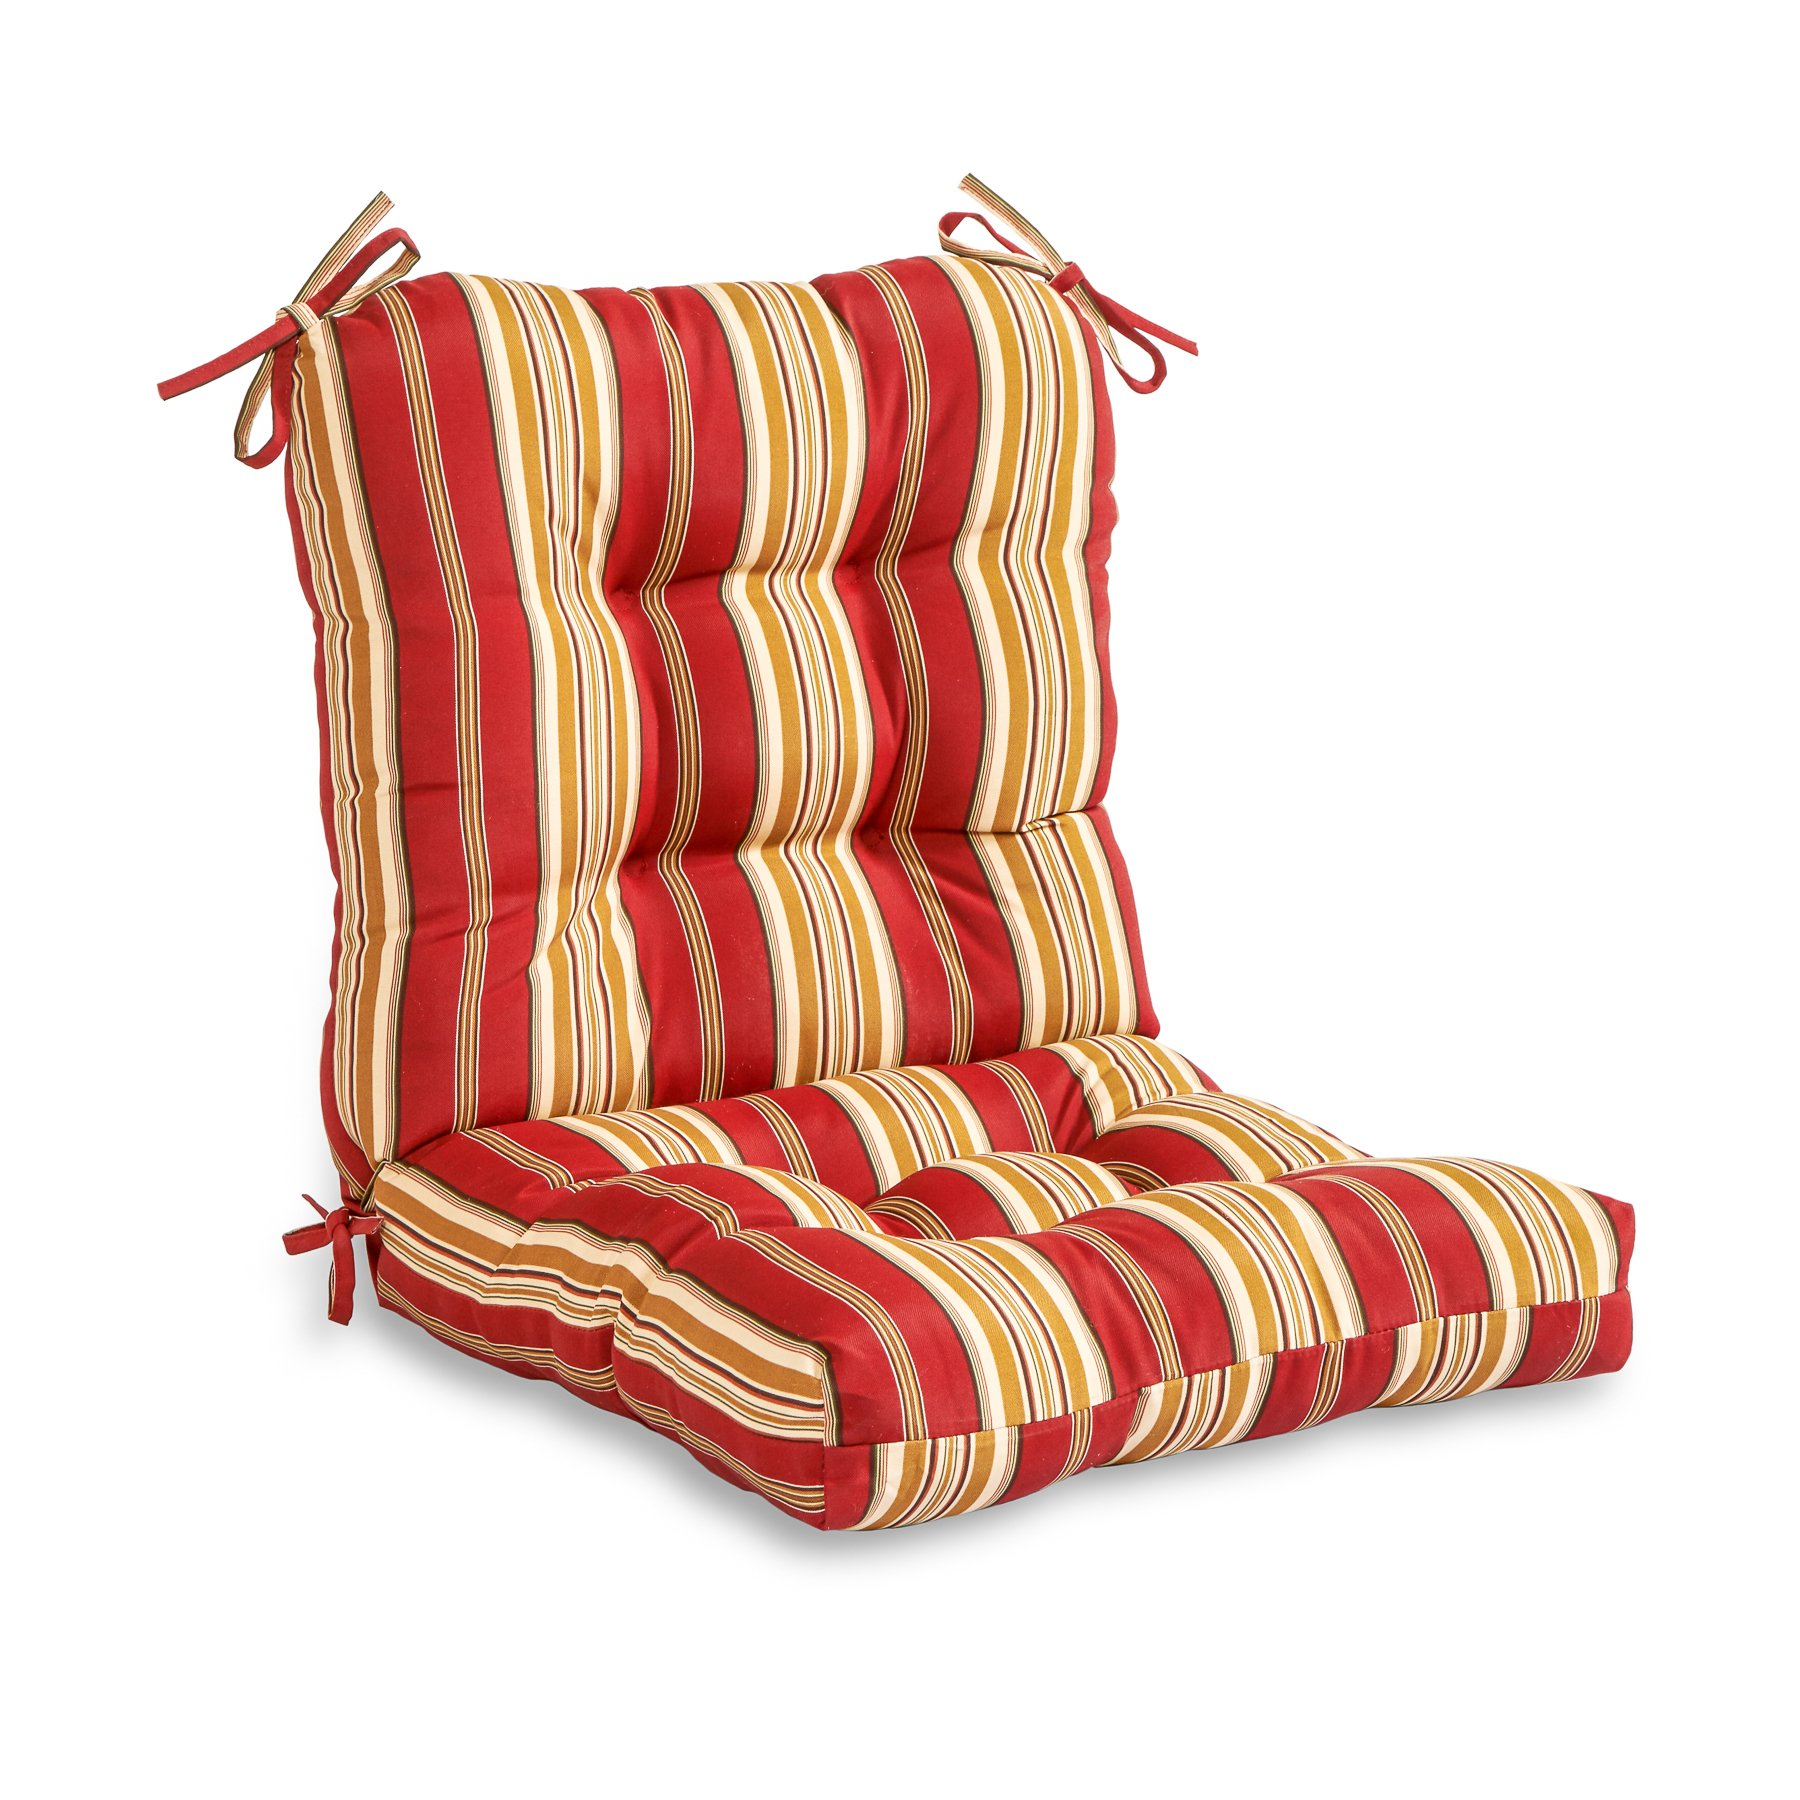 replacement cushions for outdoor furniture amazon com rh amazon com replacement patio furniture cushions canada replacement patio seat cushions